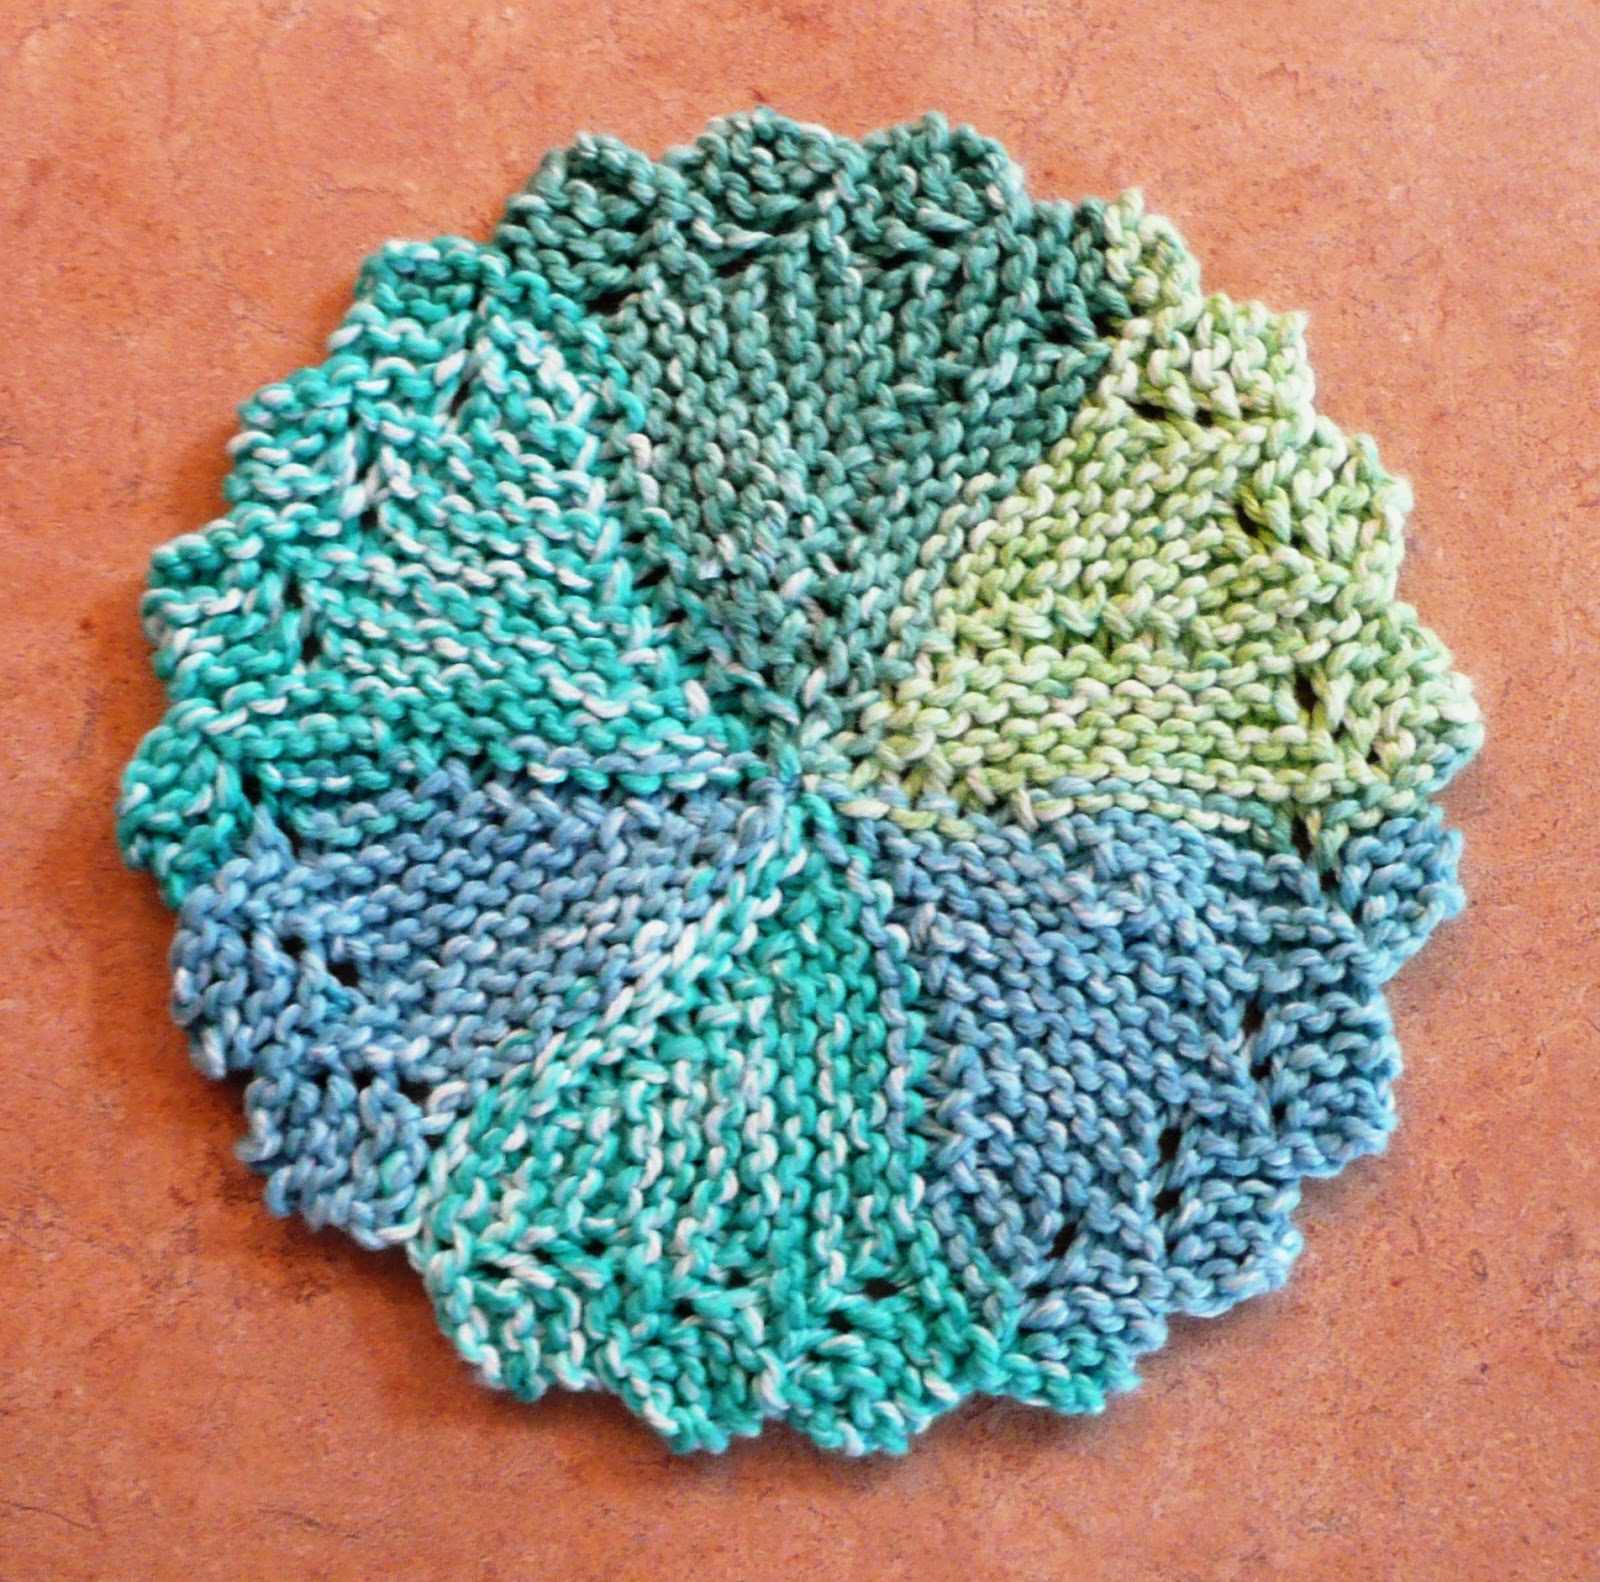 Lacy Round Dishcloth Free Knitting Pattern ⋆ Knitting Bee